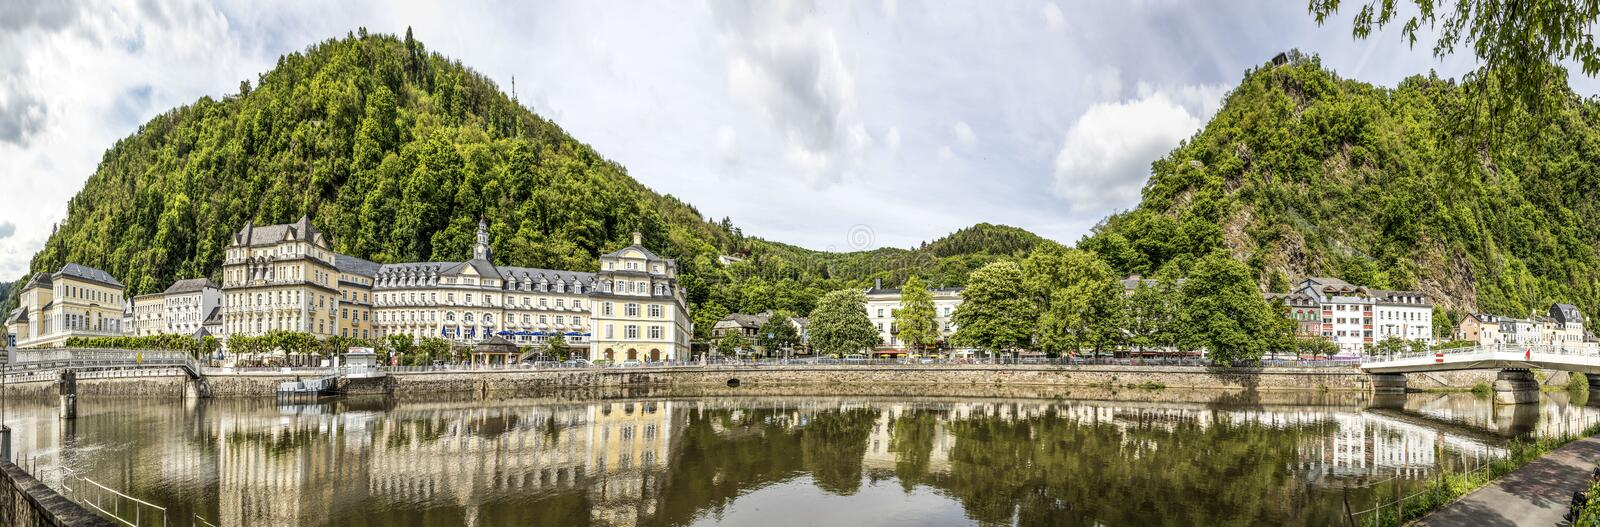 Promenade of Bad Ems, Germany stock images